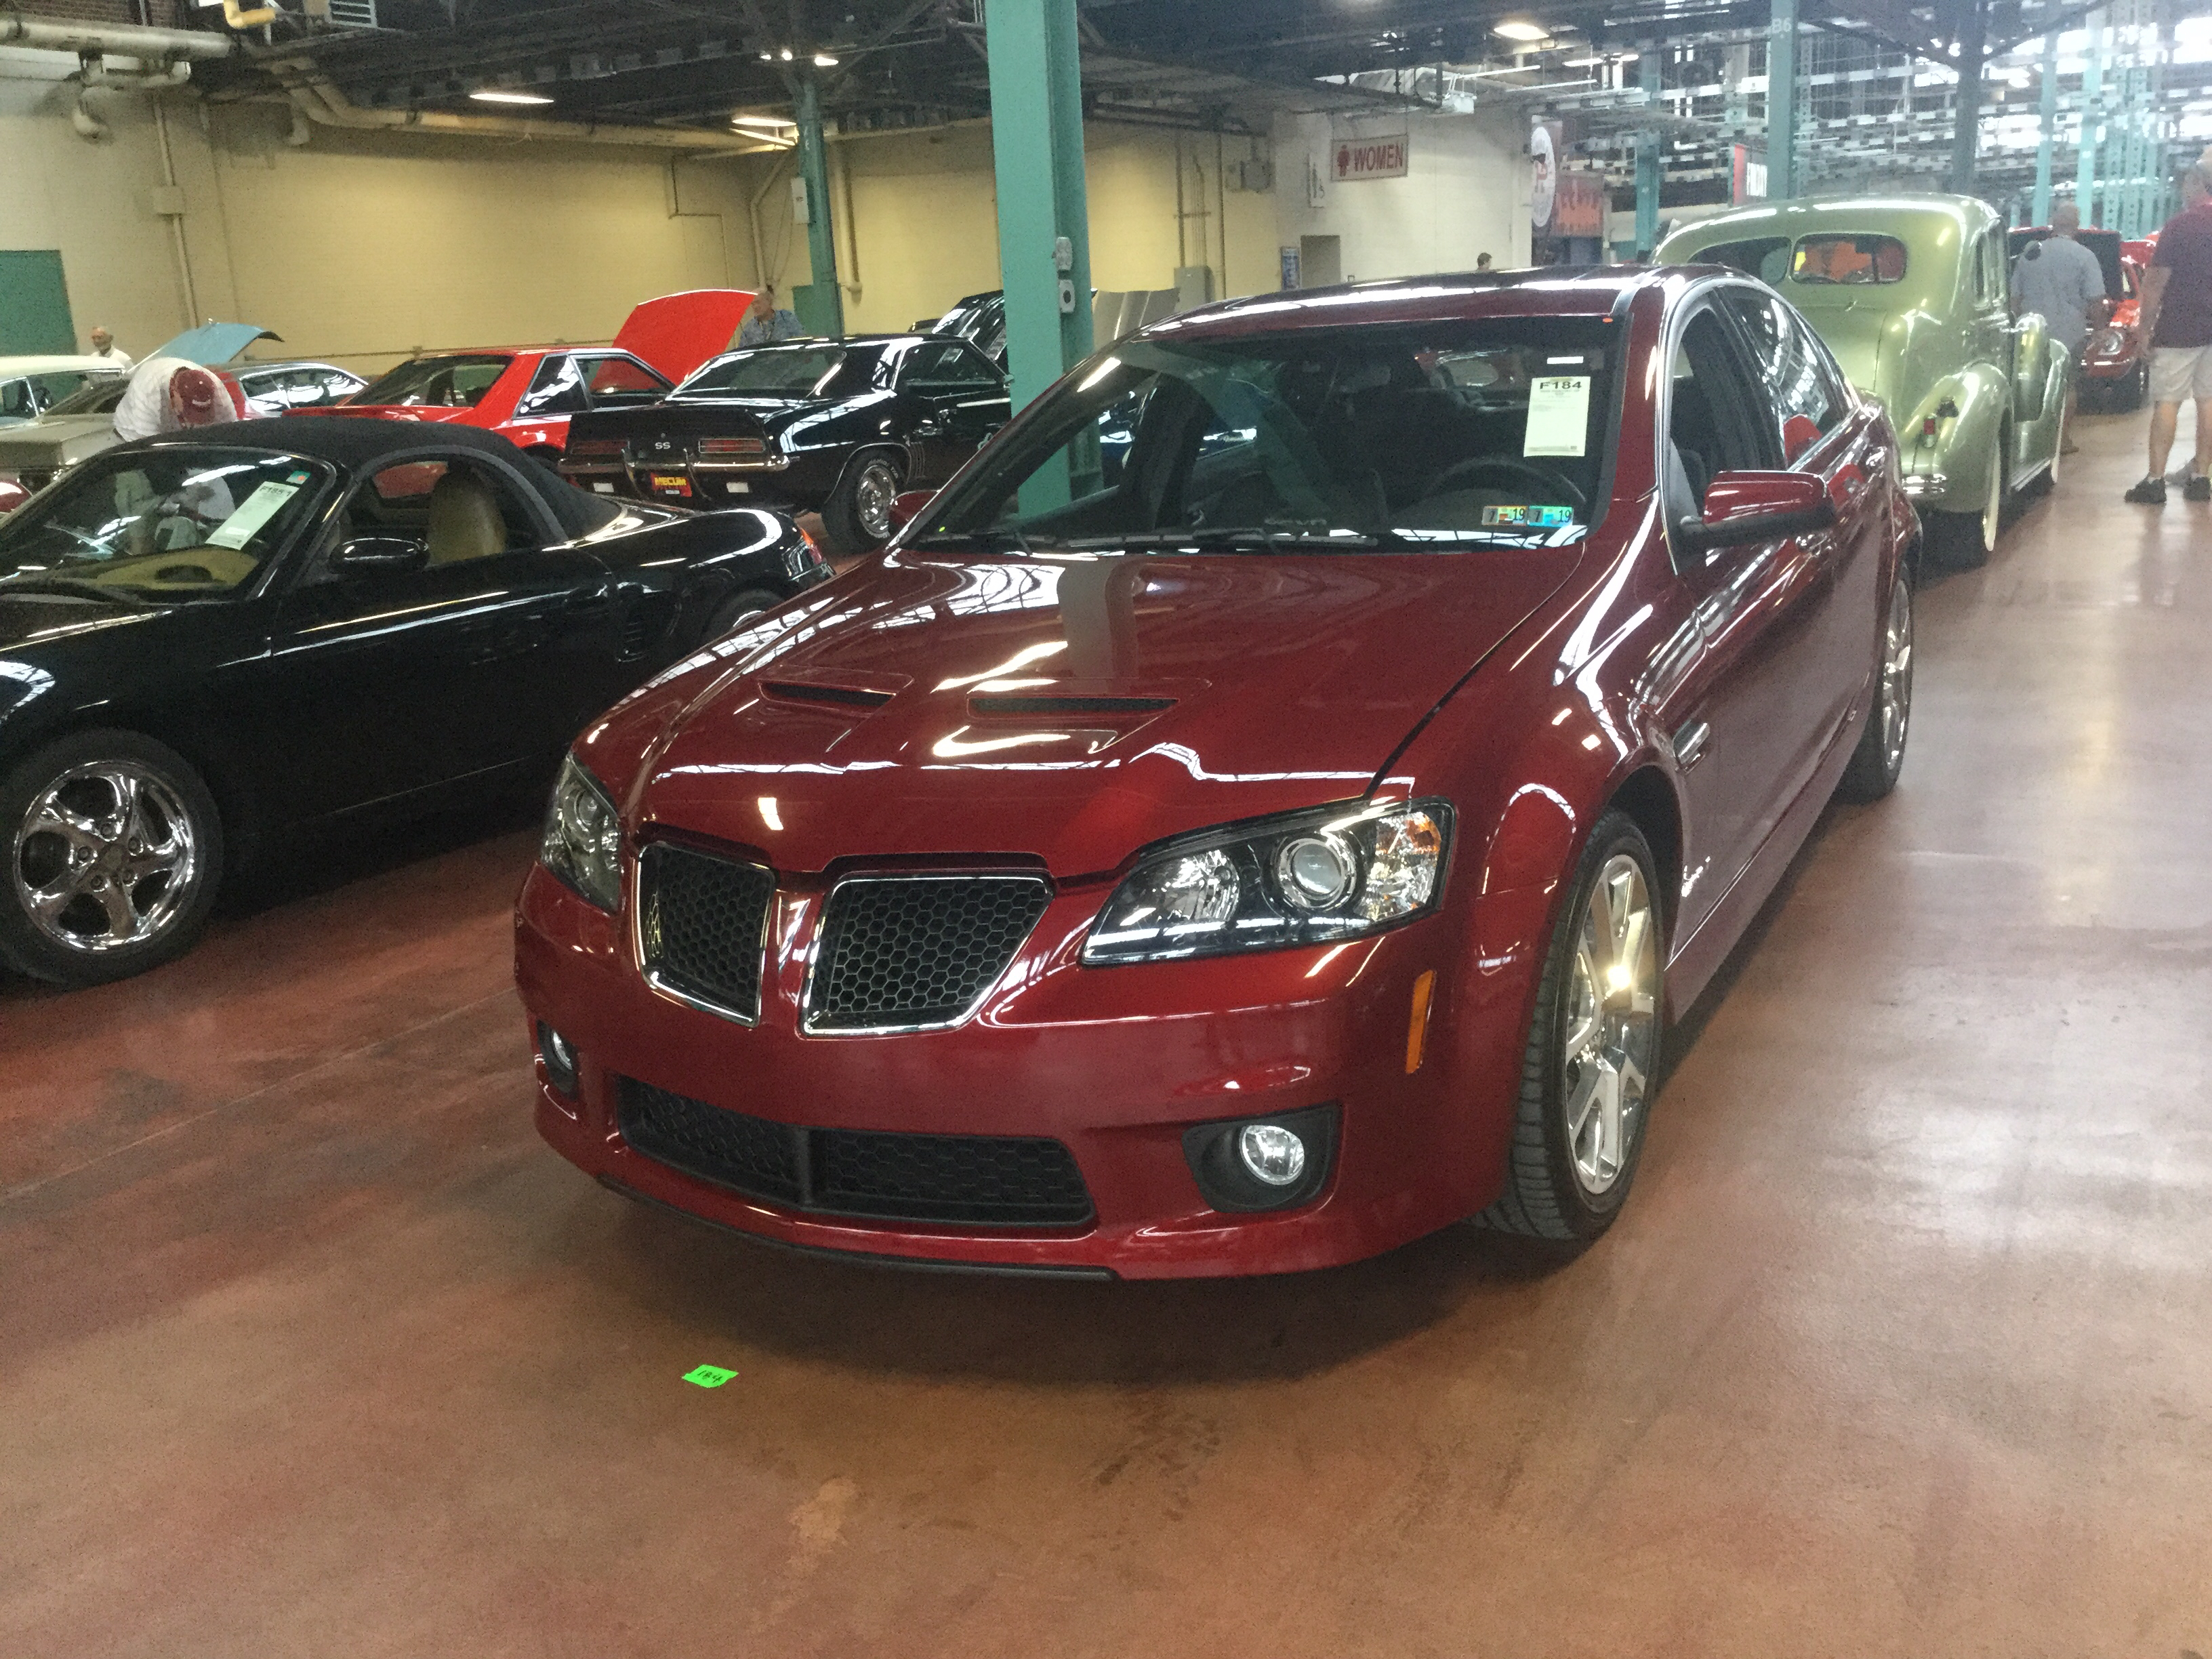 2009 Pontiac G8 Values | Hagerty Valuation Tool®